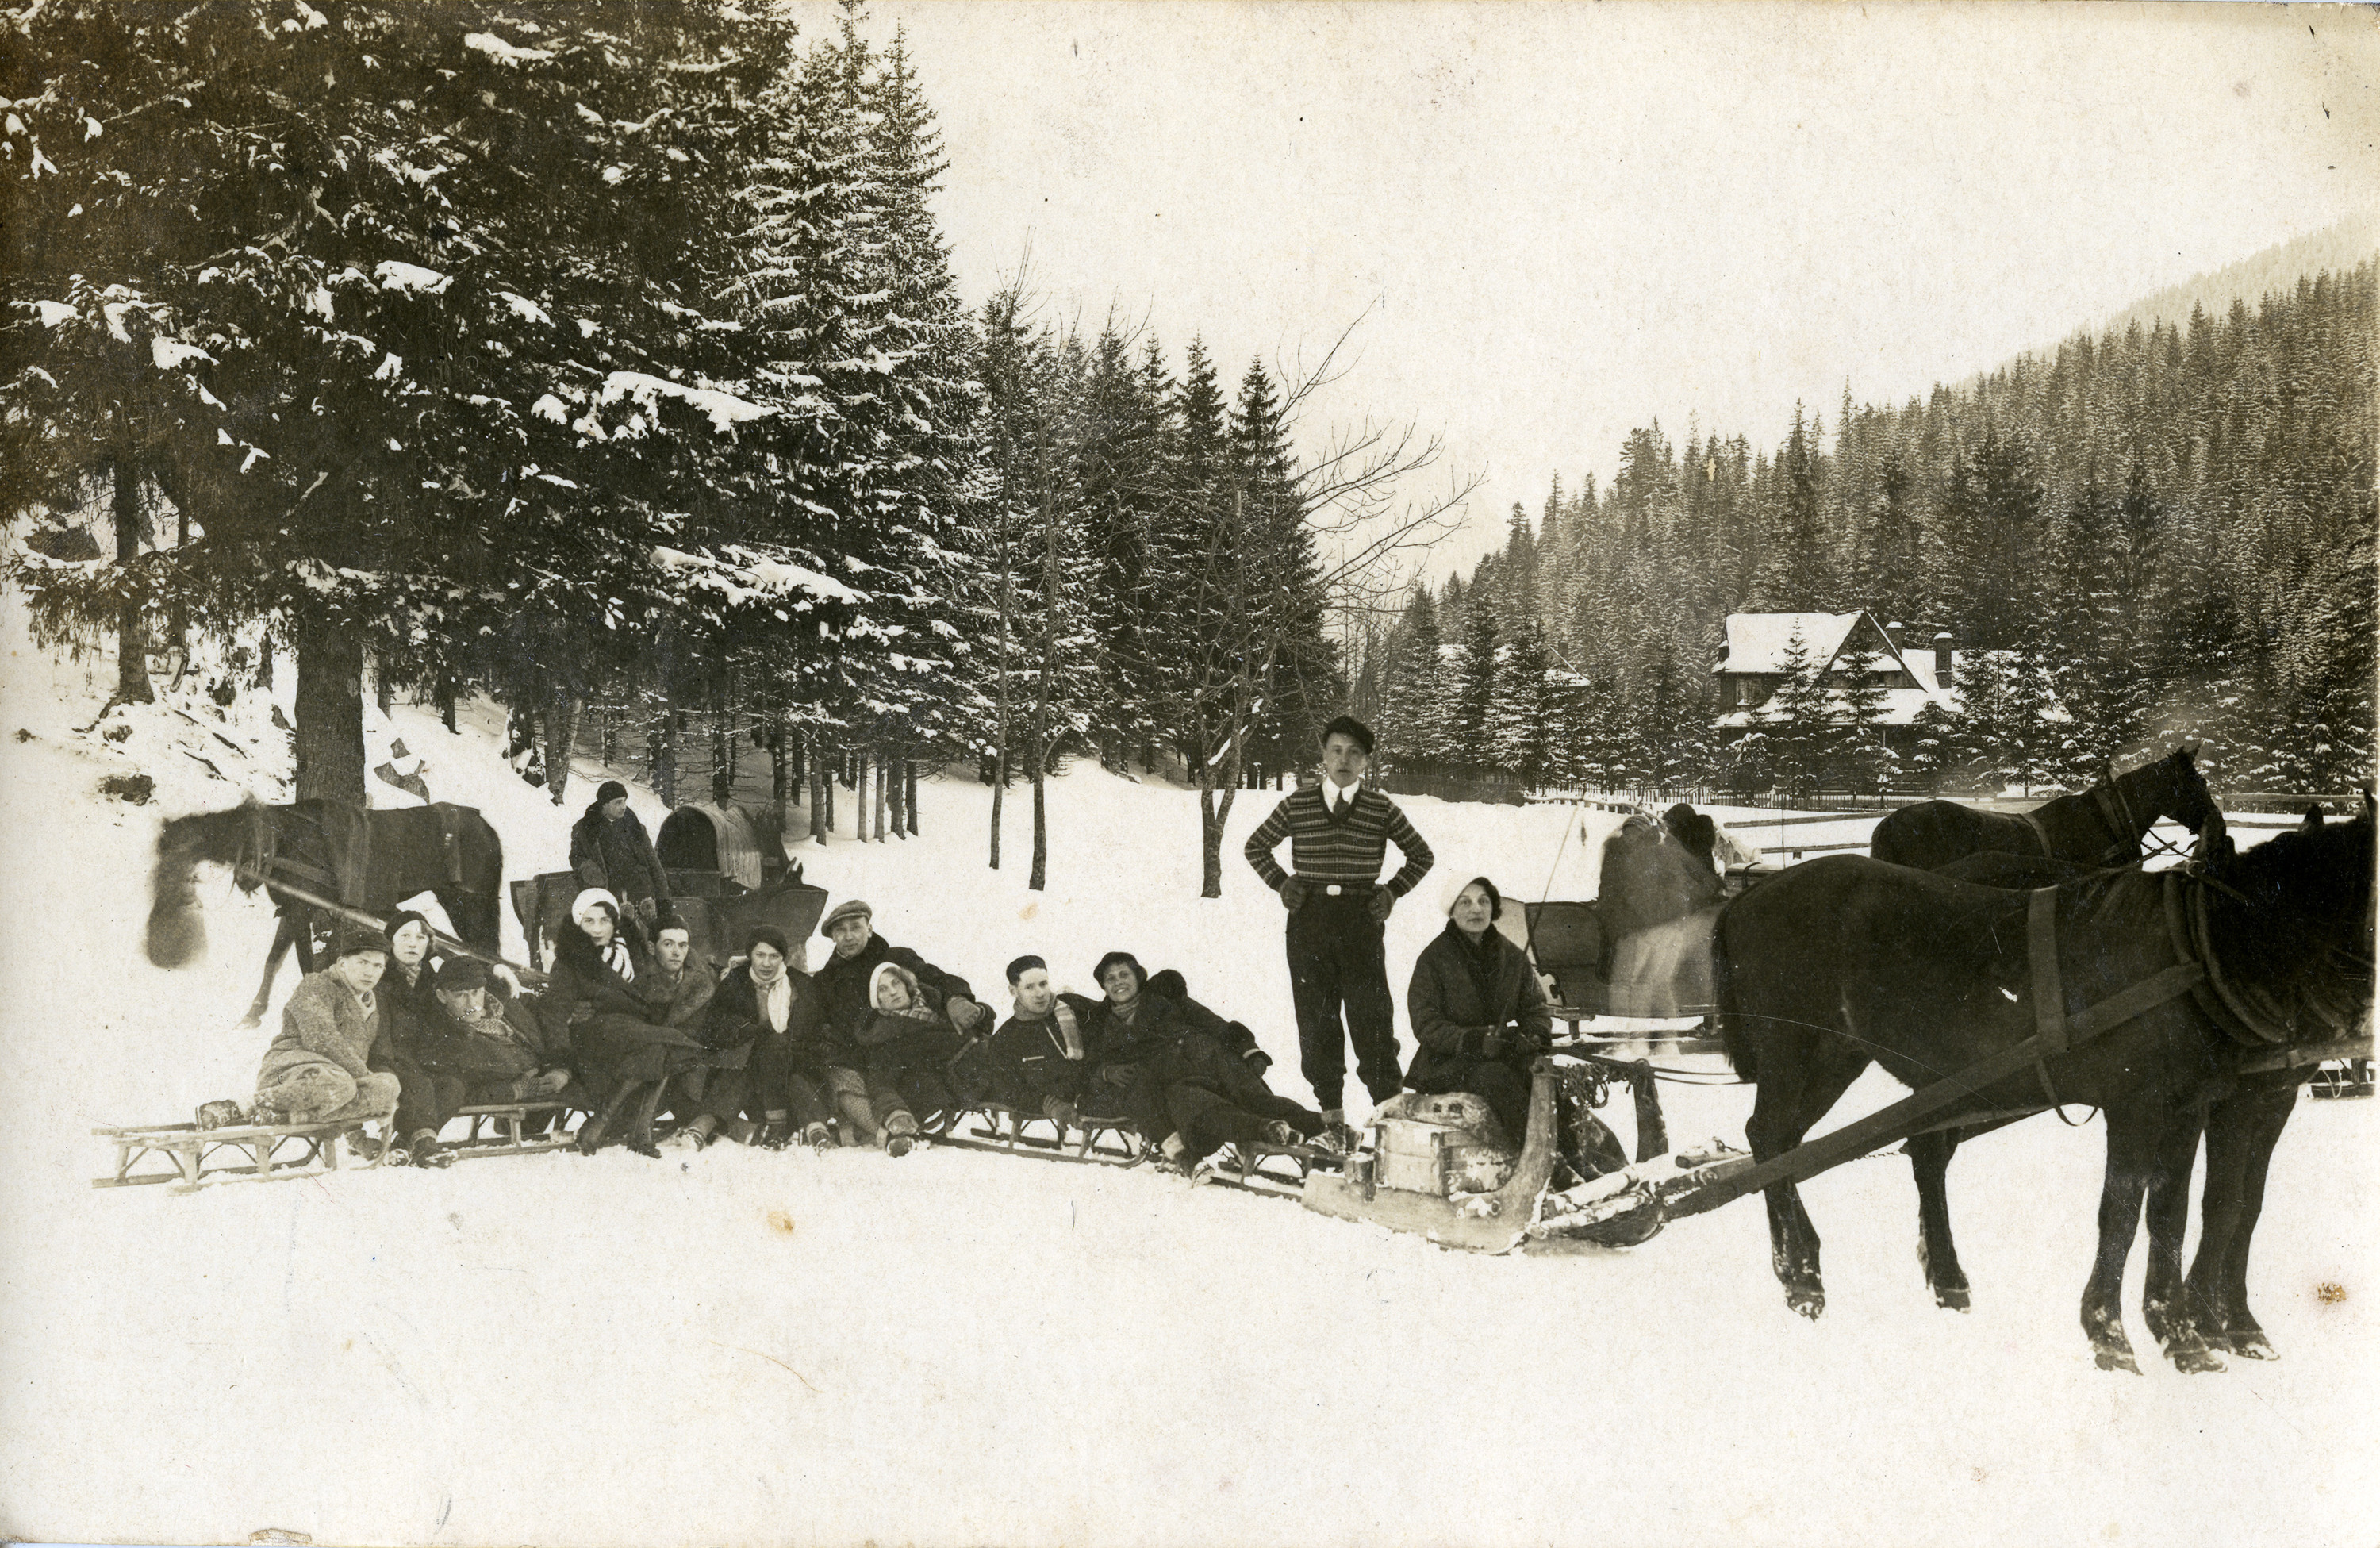 A group of young people sit on a sleigh pulled by a team of horses.   Among those pictured is Adela Alterman (seated eighth from the left).